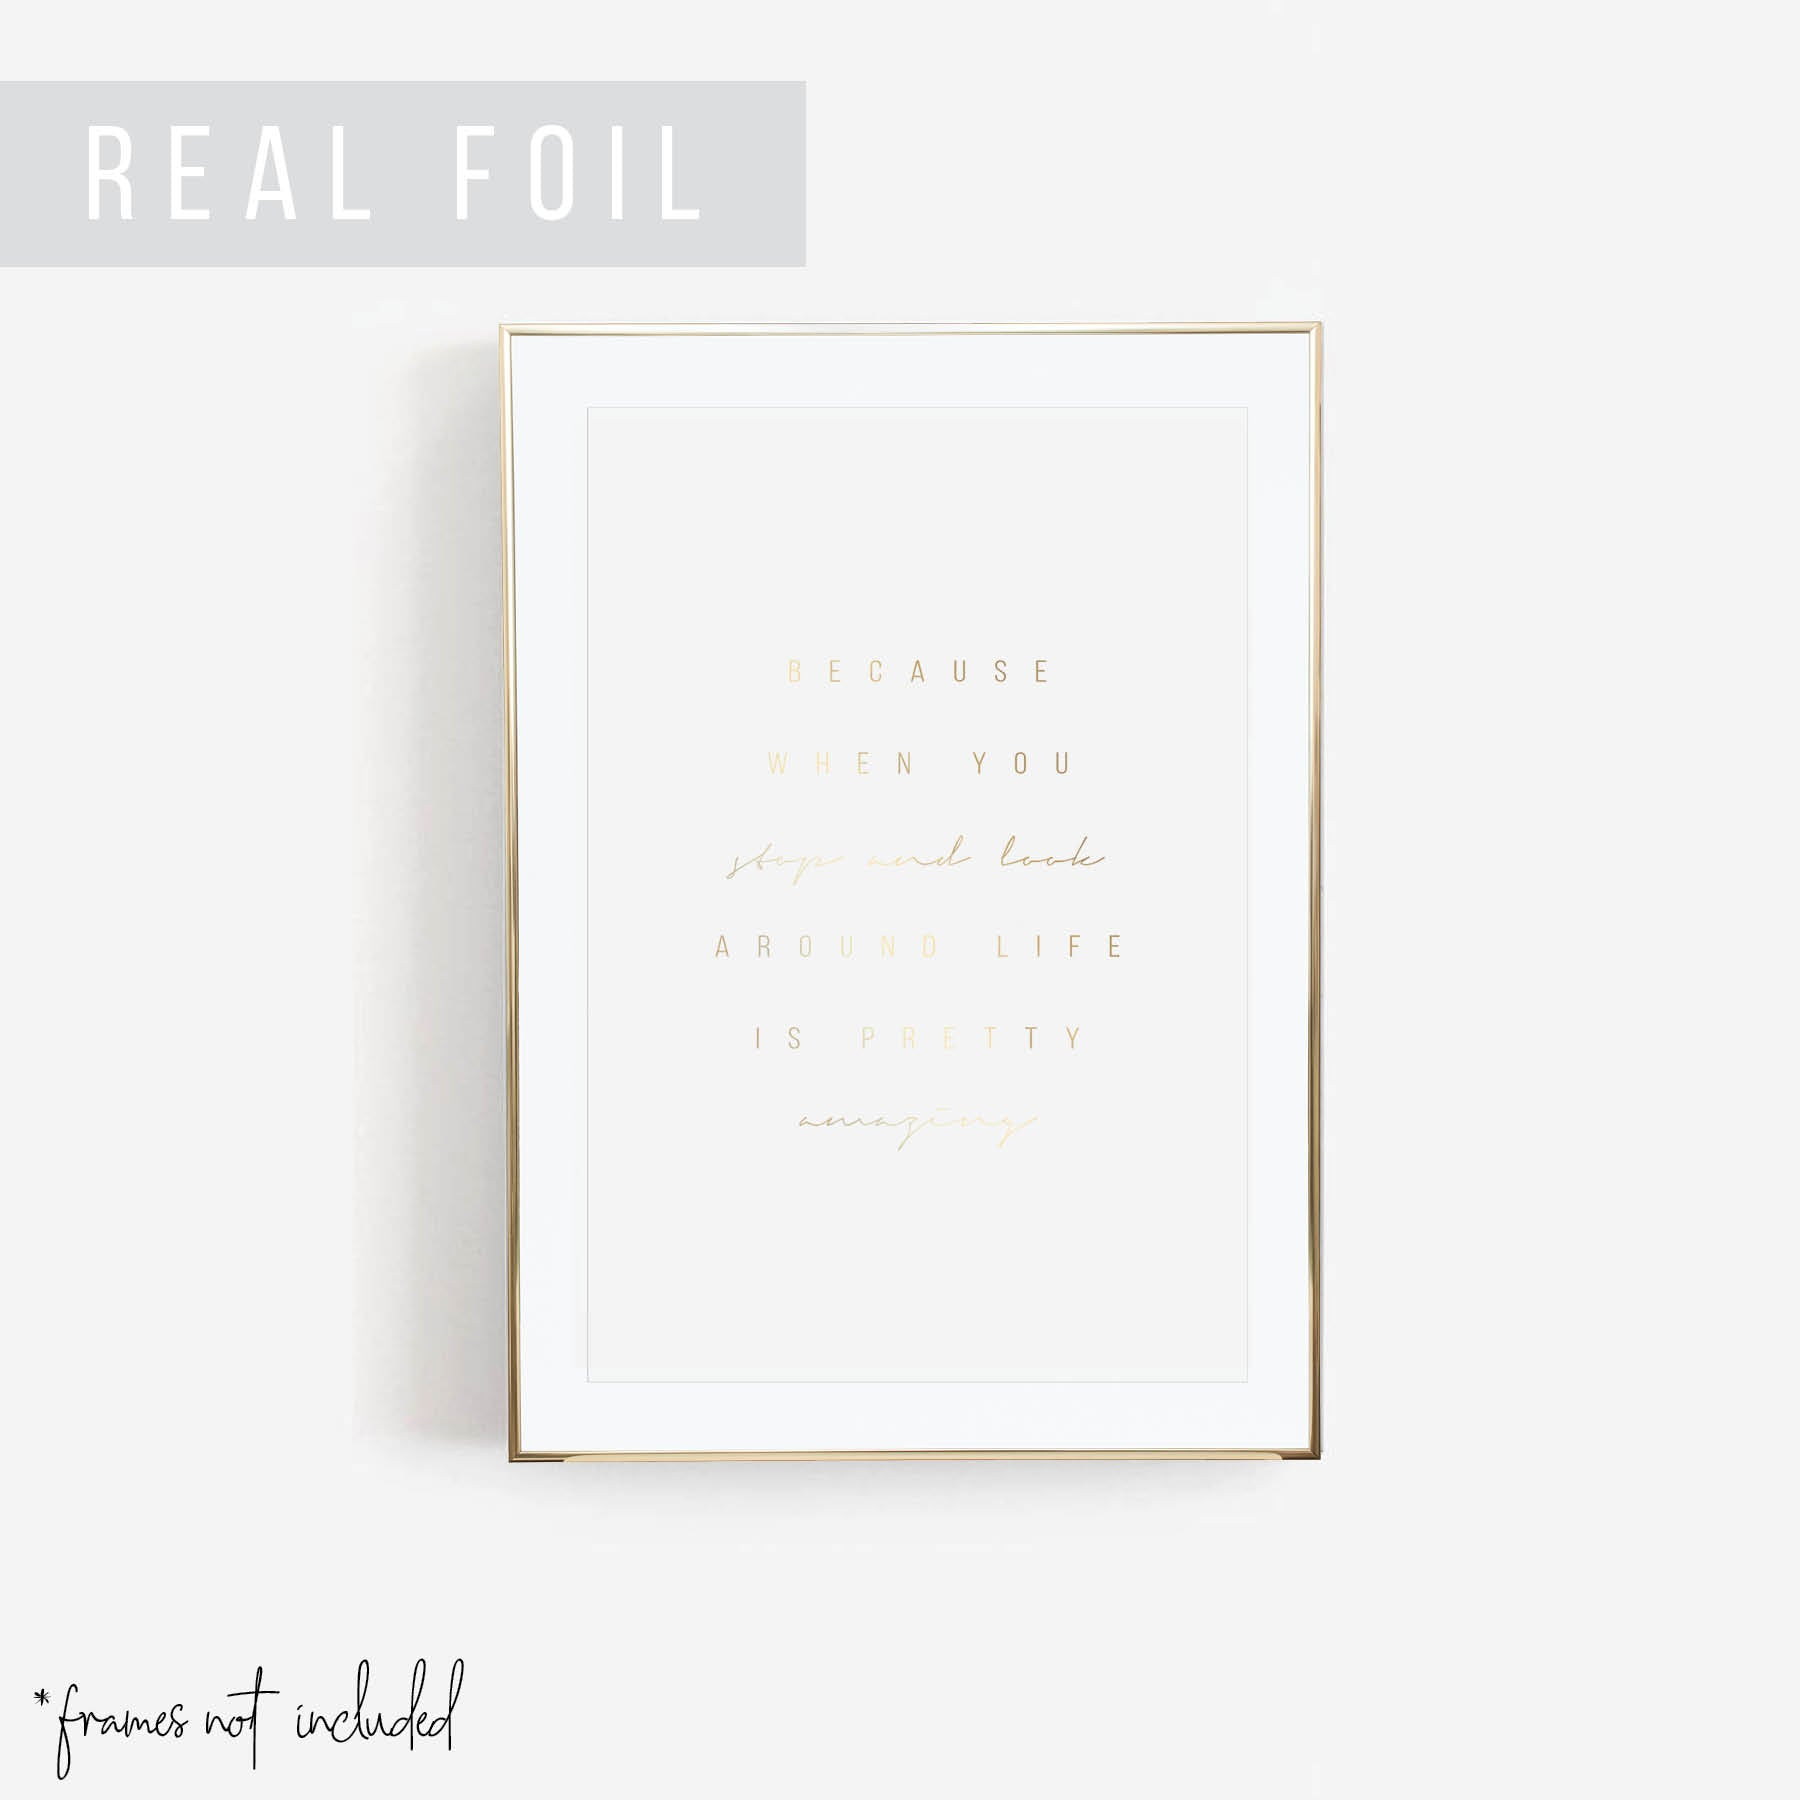 Because When You Sop and Look Around Life Is Pretty Amazing Foiled Art Print